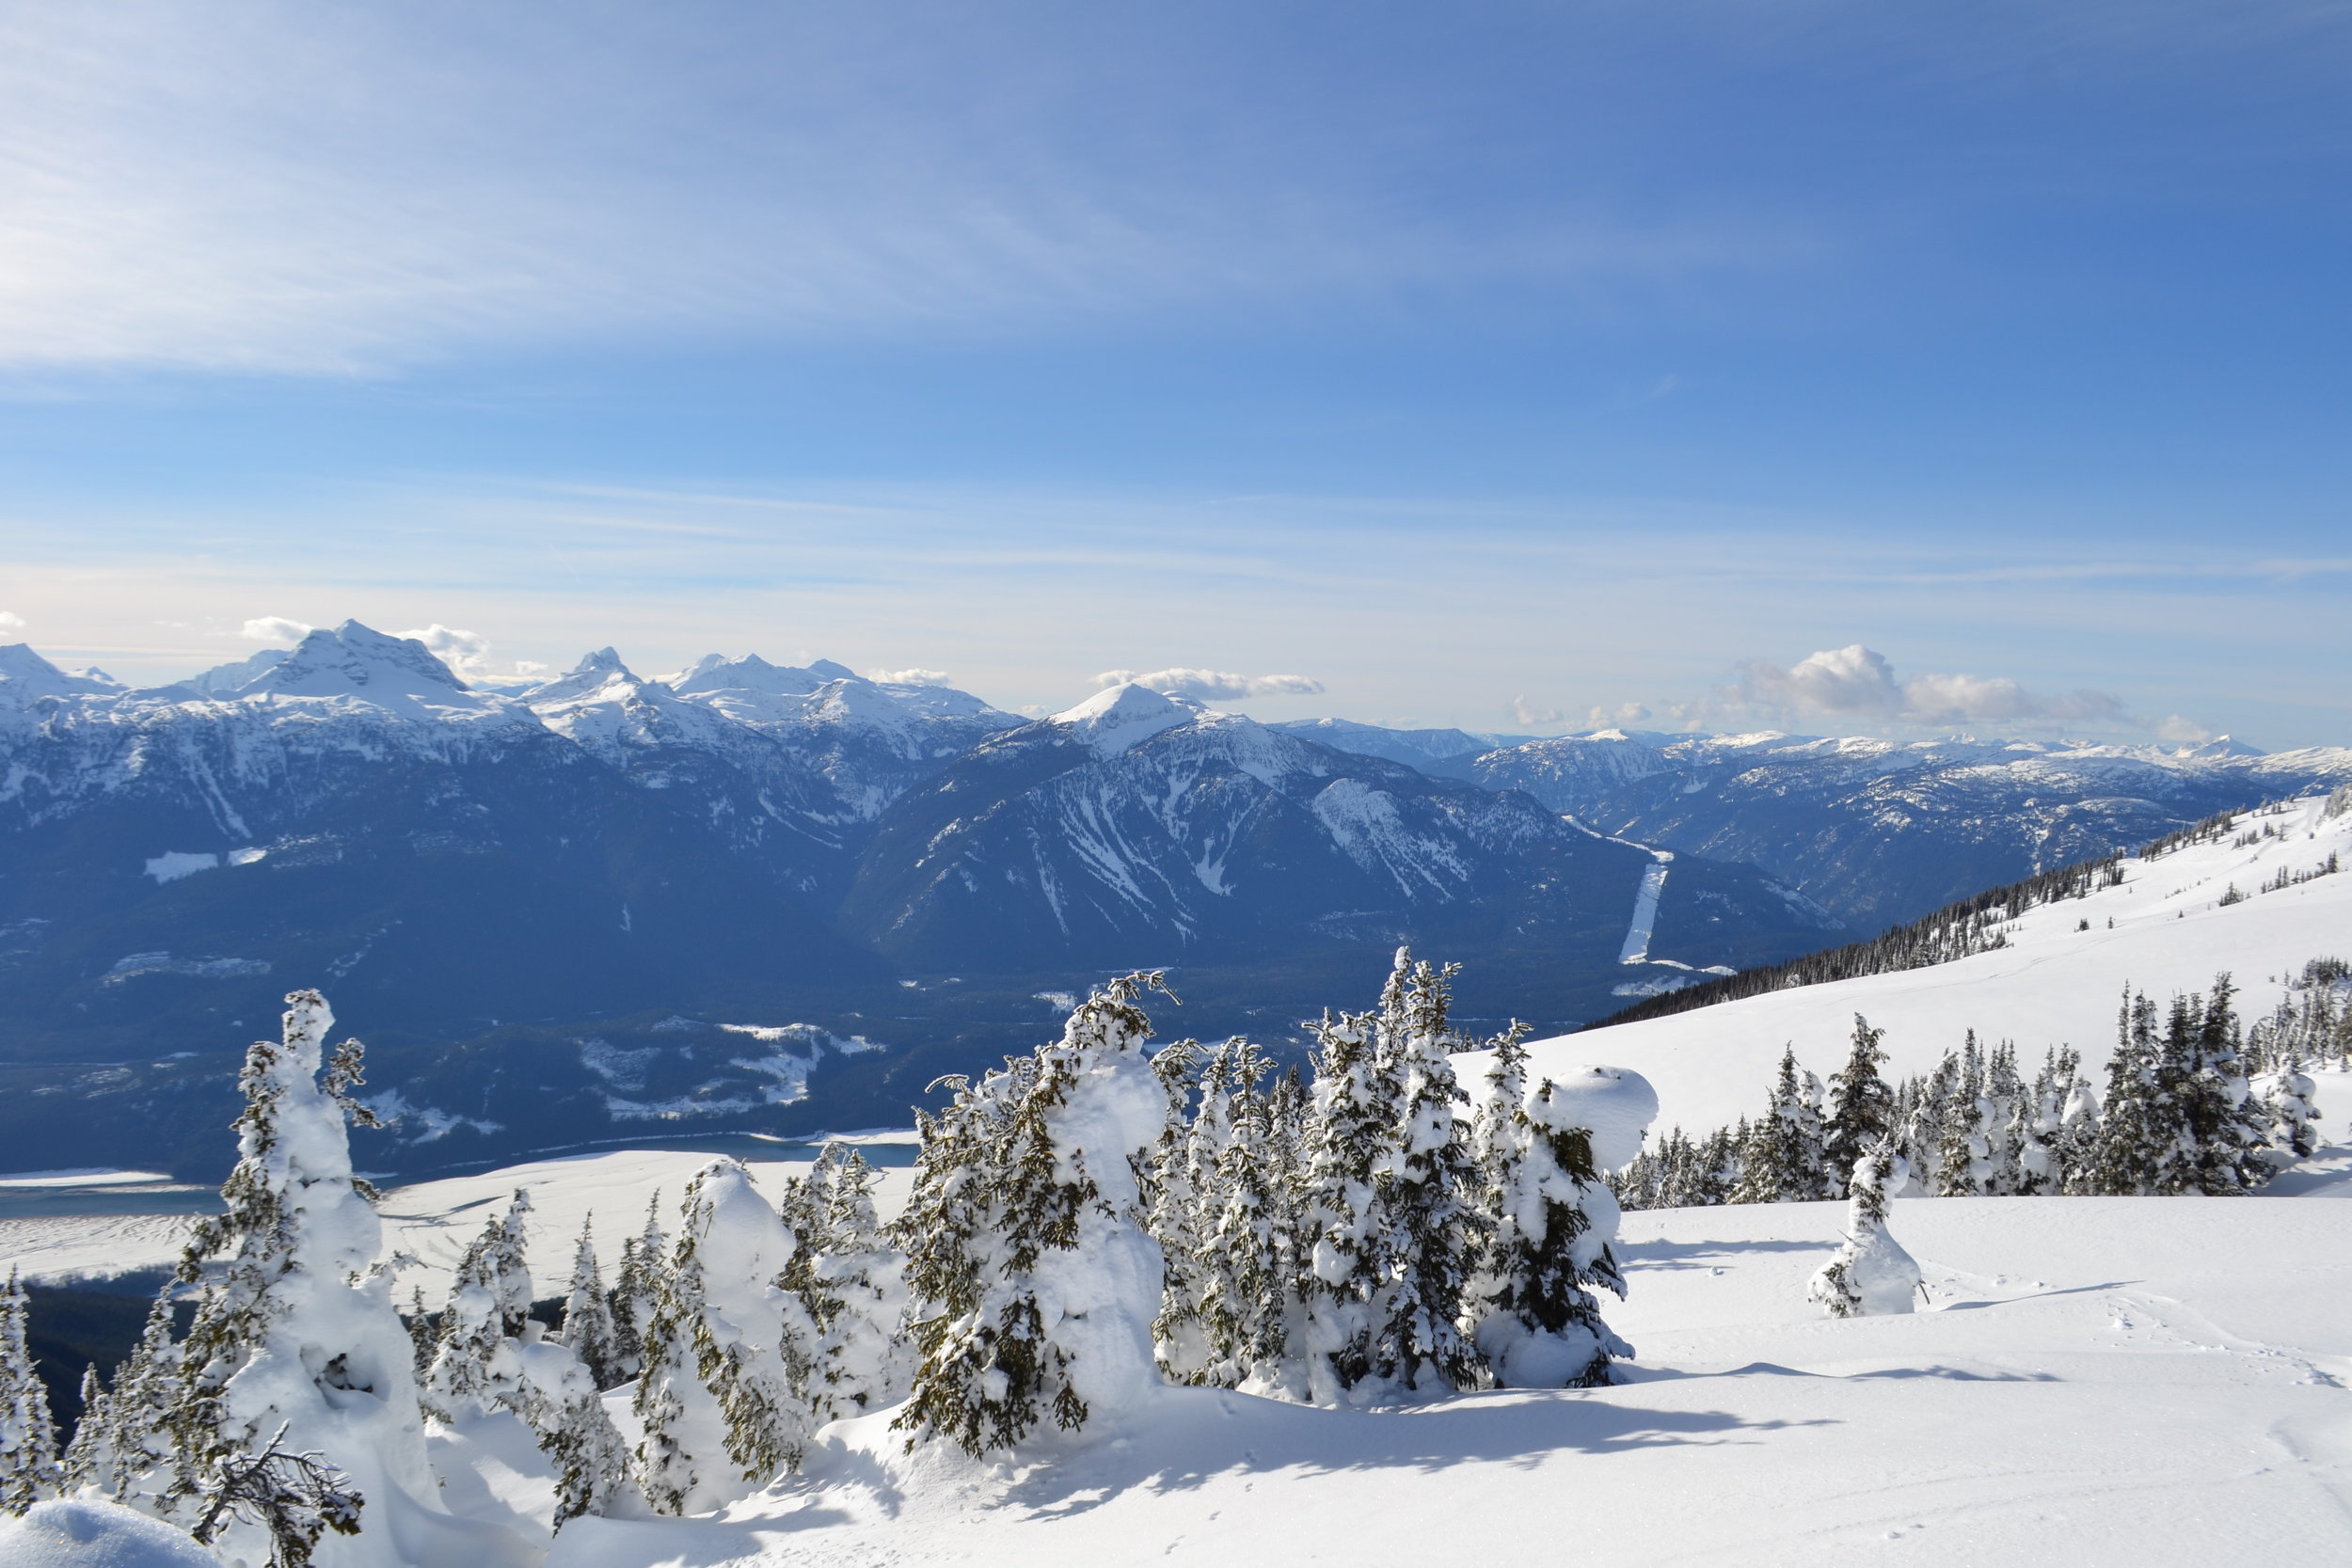 I spent a ski season in Revelstoke back in 2015 and have been obsessed with it ever since.